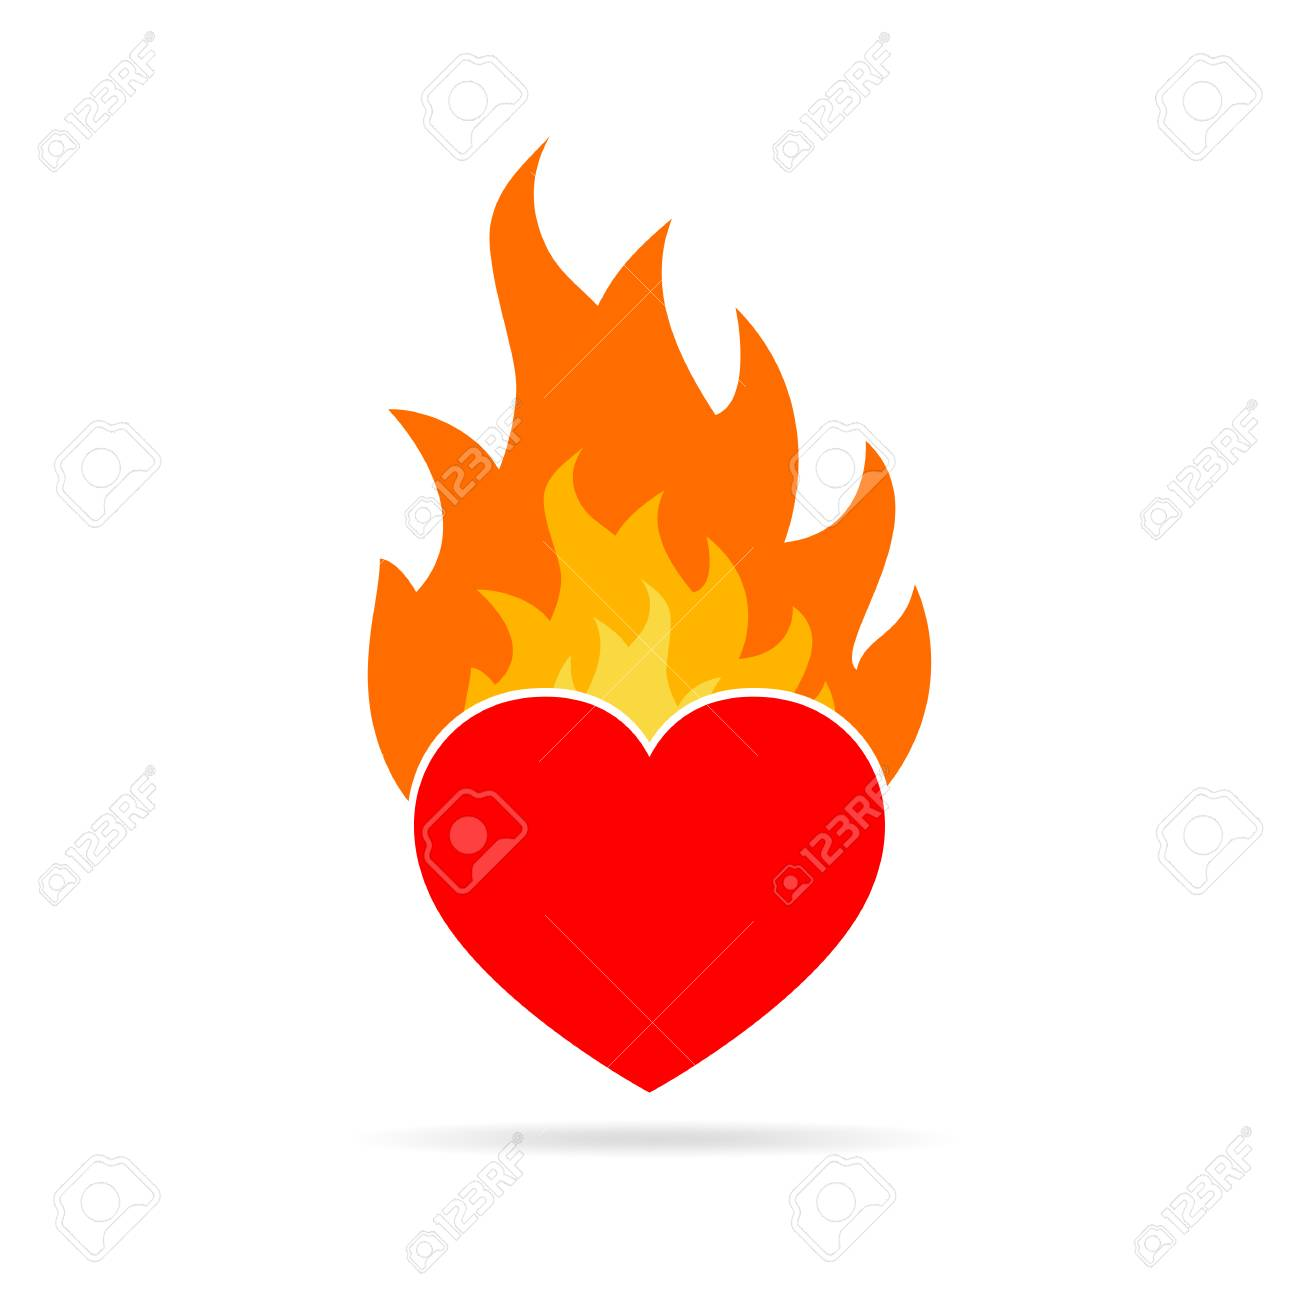 heart on fire isolated on white background heart in flame